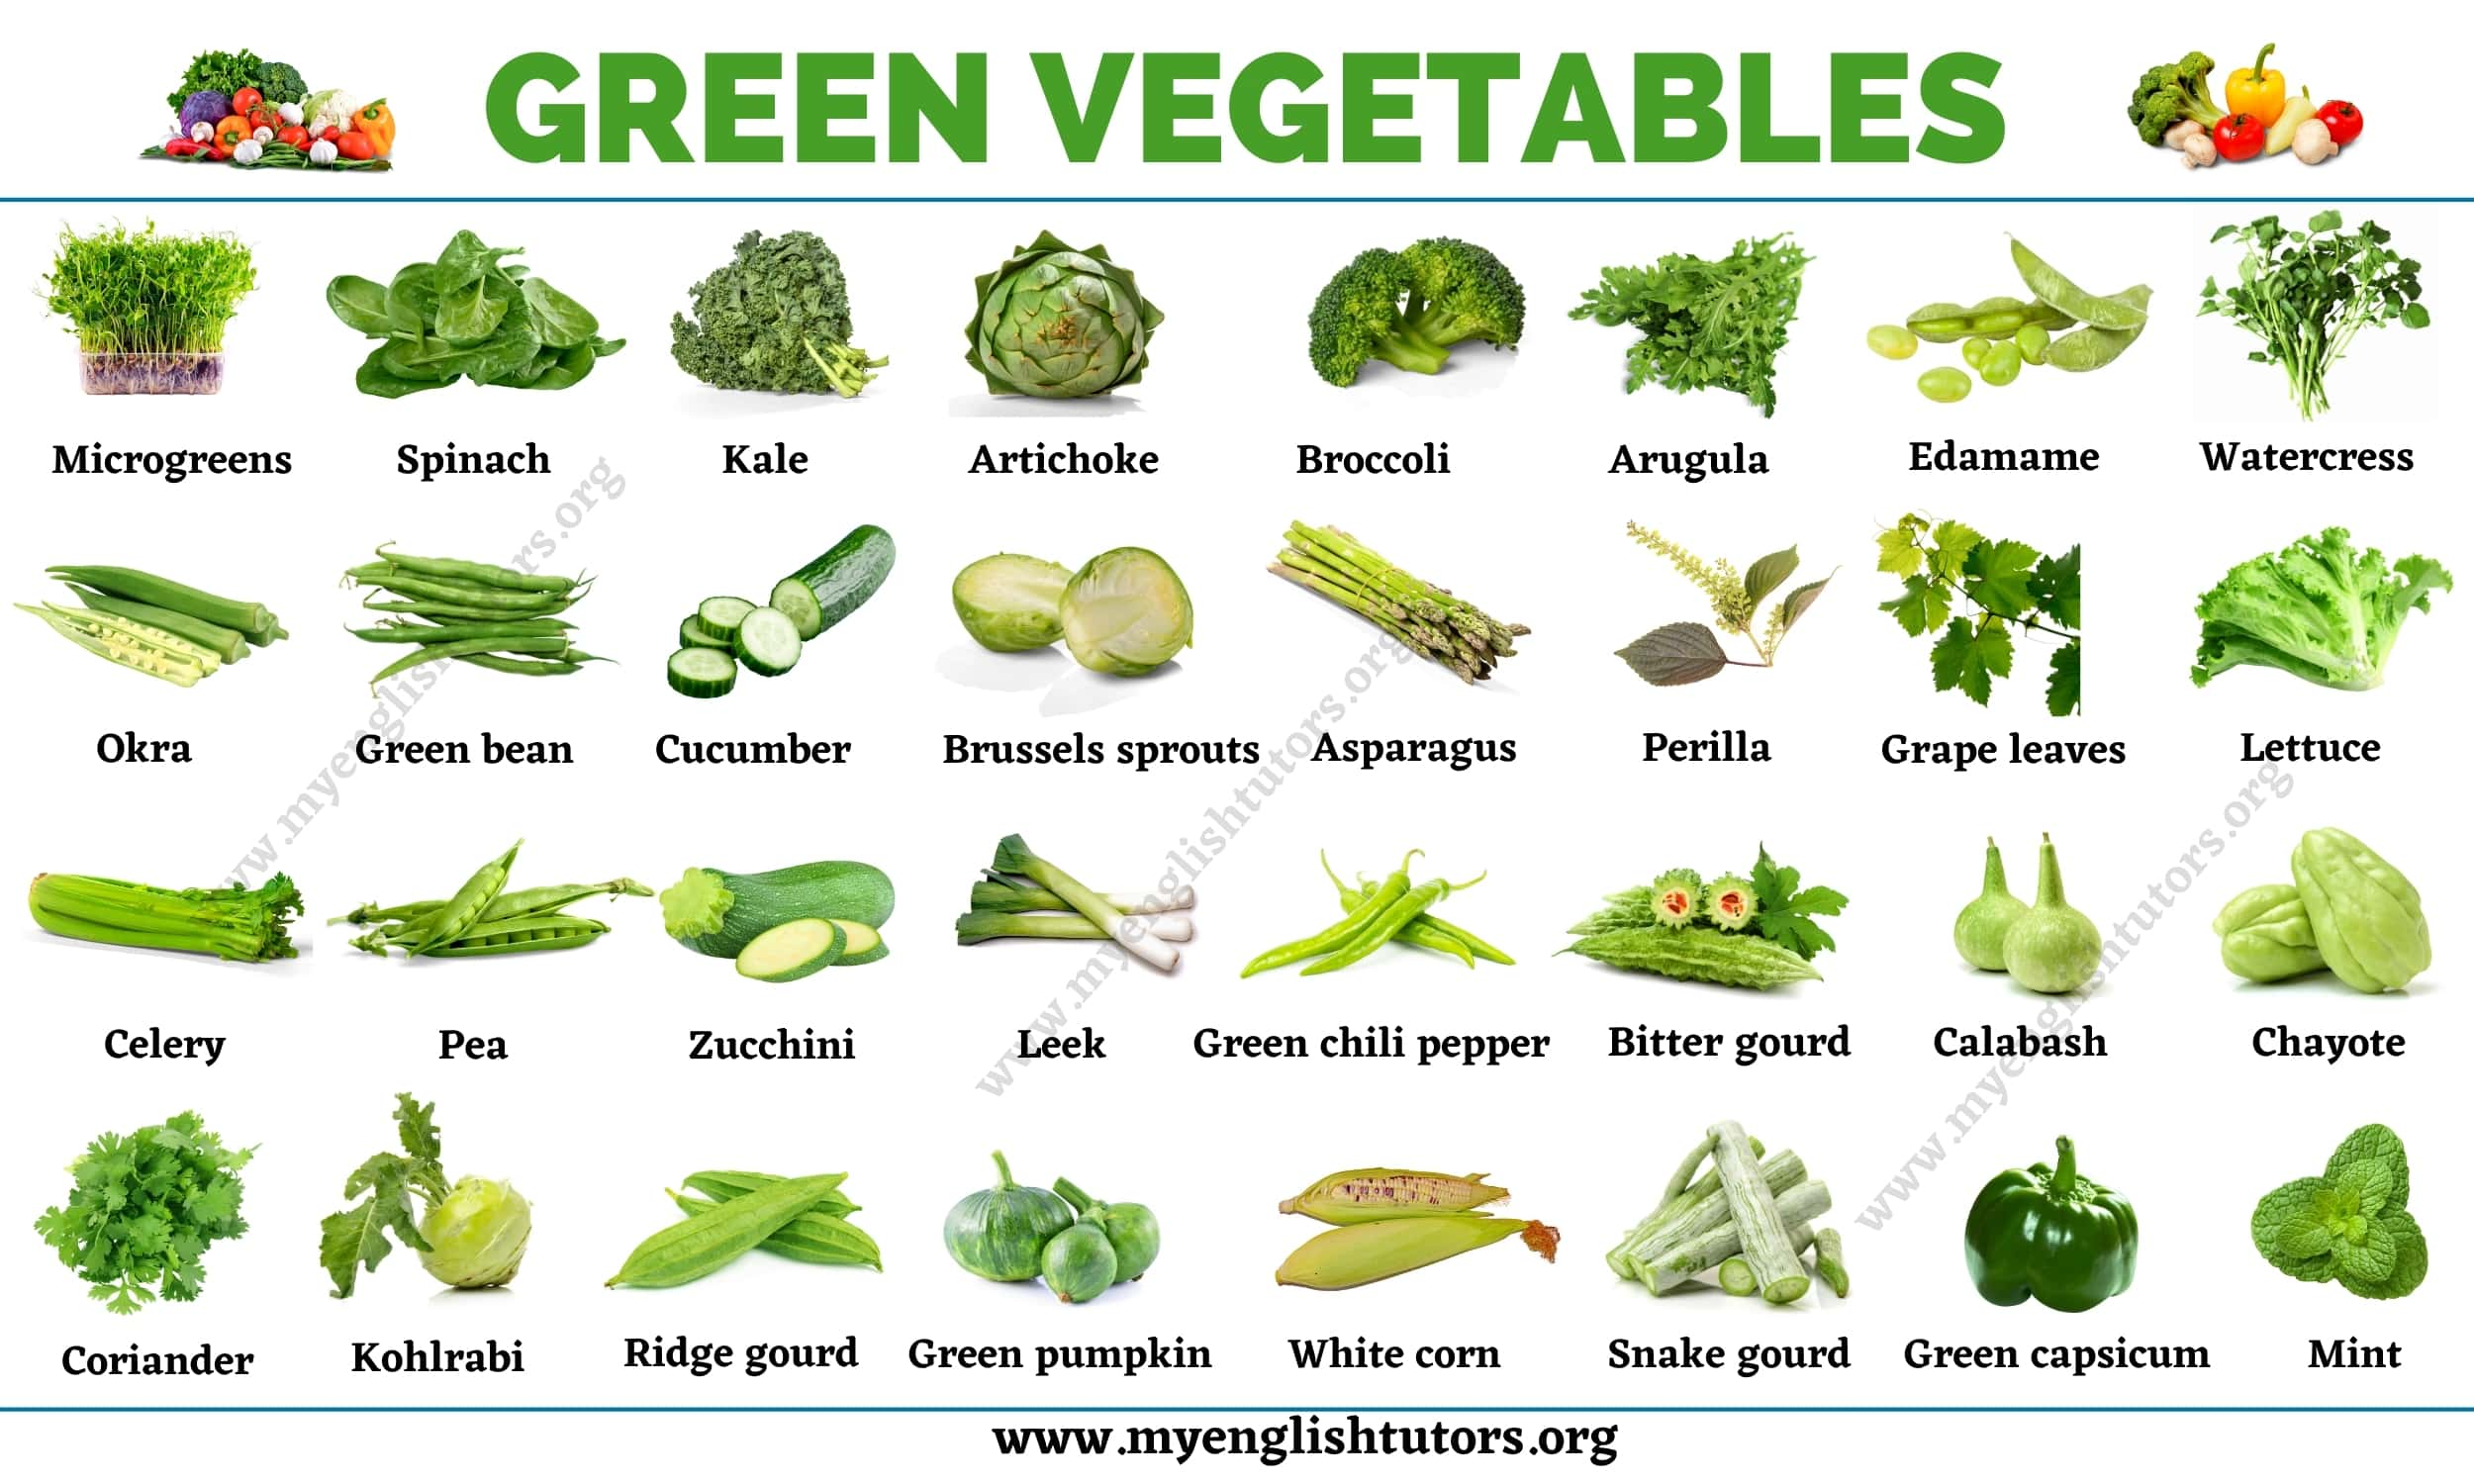 Green Vegetables: List of 31 Types of Vegetables that Have Green Color